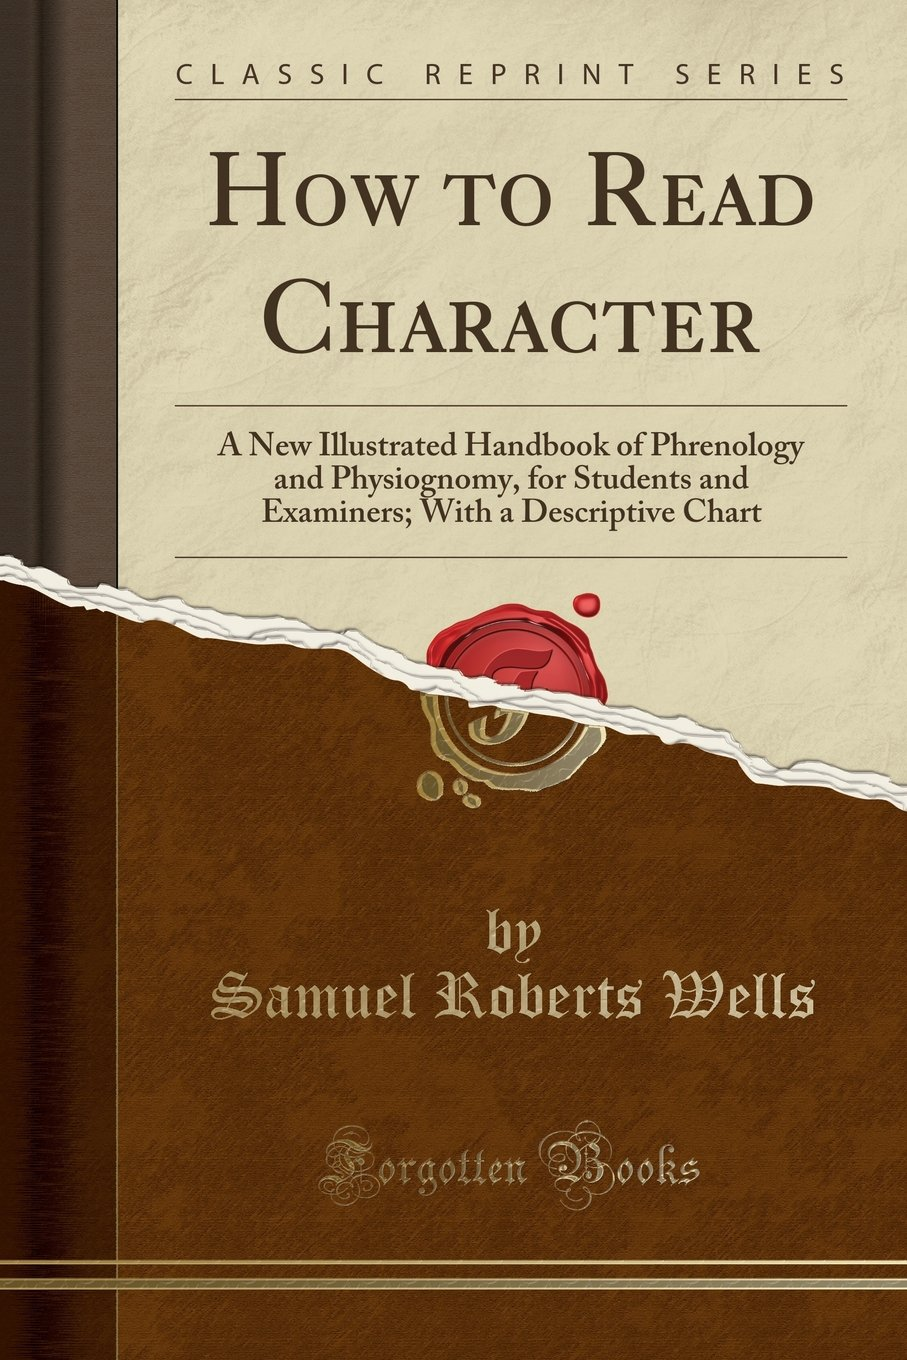 How to Read Character: Hand-Book of Physiology, Phrenology and Physiognomy, Illustrated With a Descriptive Chart (Classic Reprint) pdf epub